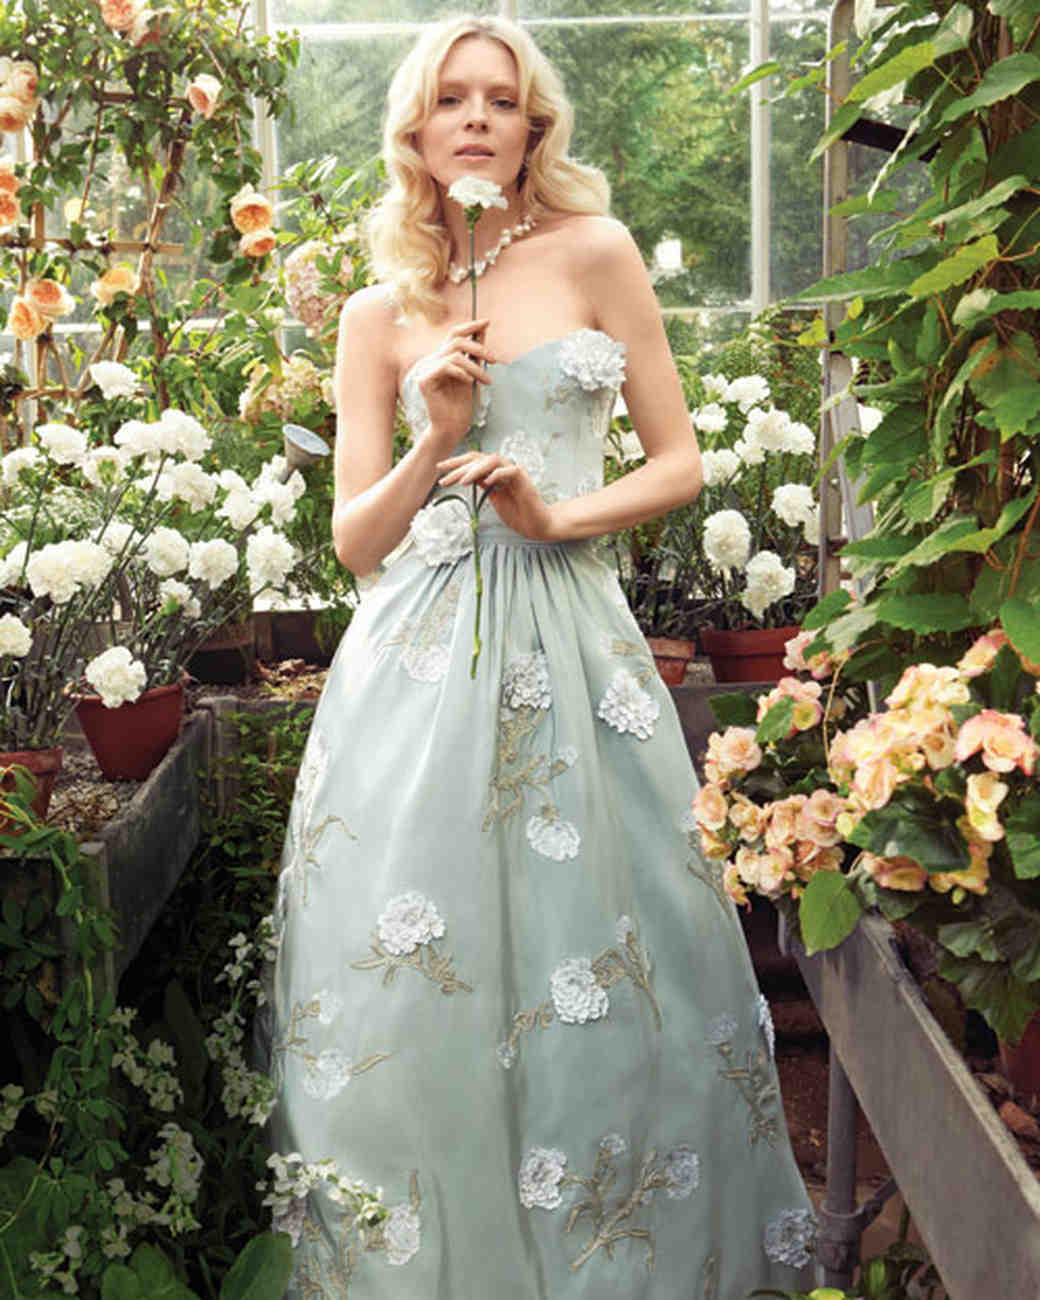 Floral Wedding Dress: Wedding Dresses Inspired By Flowers